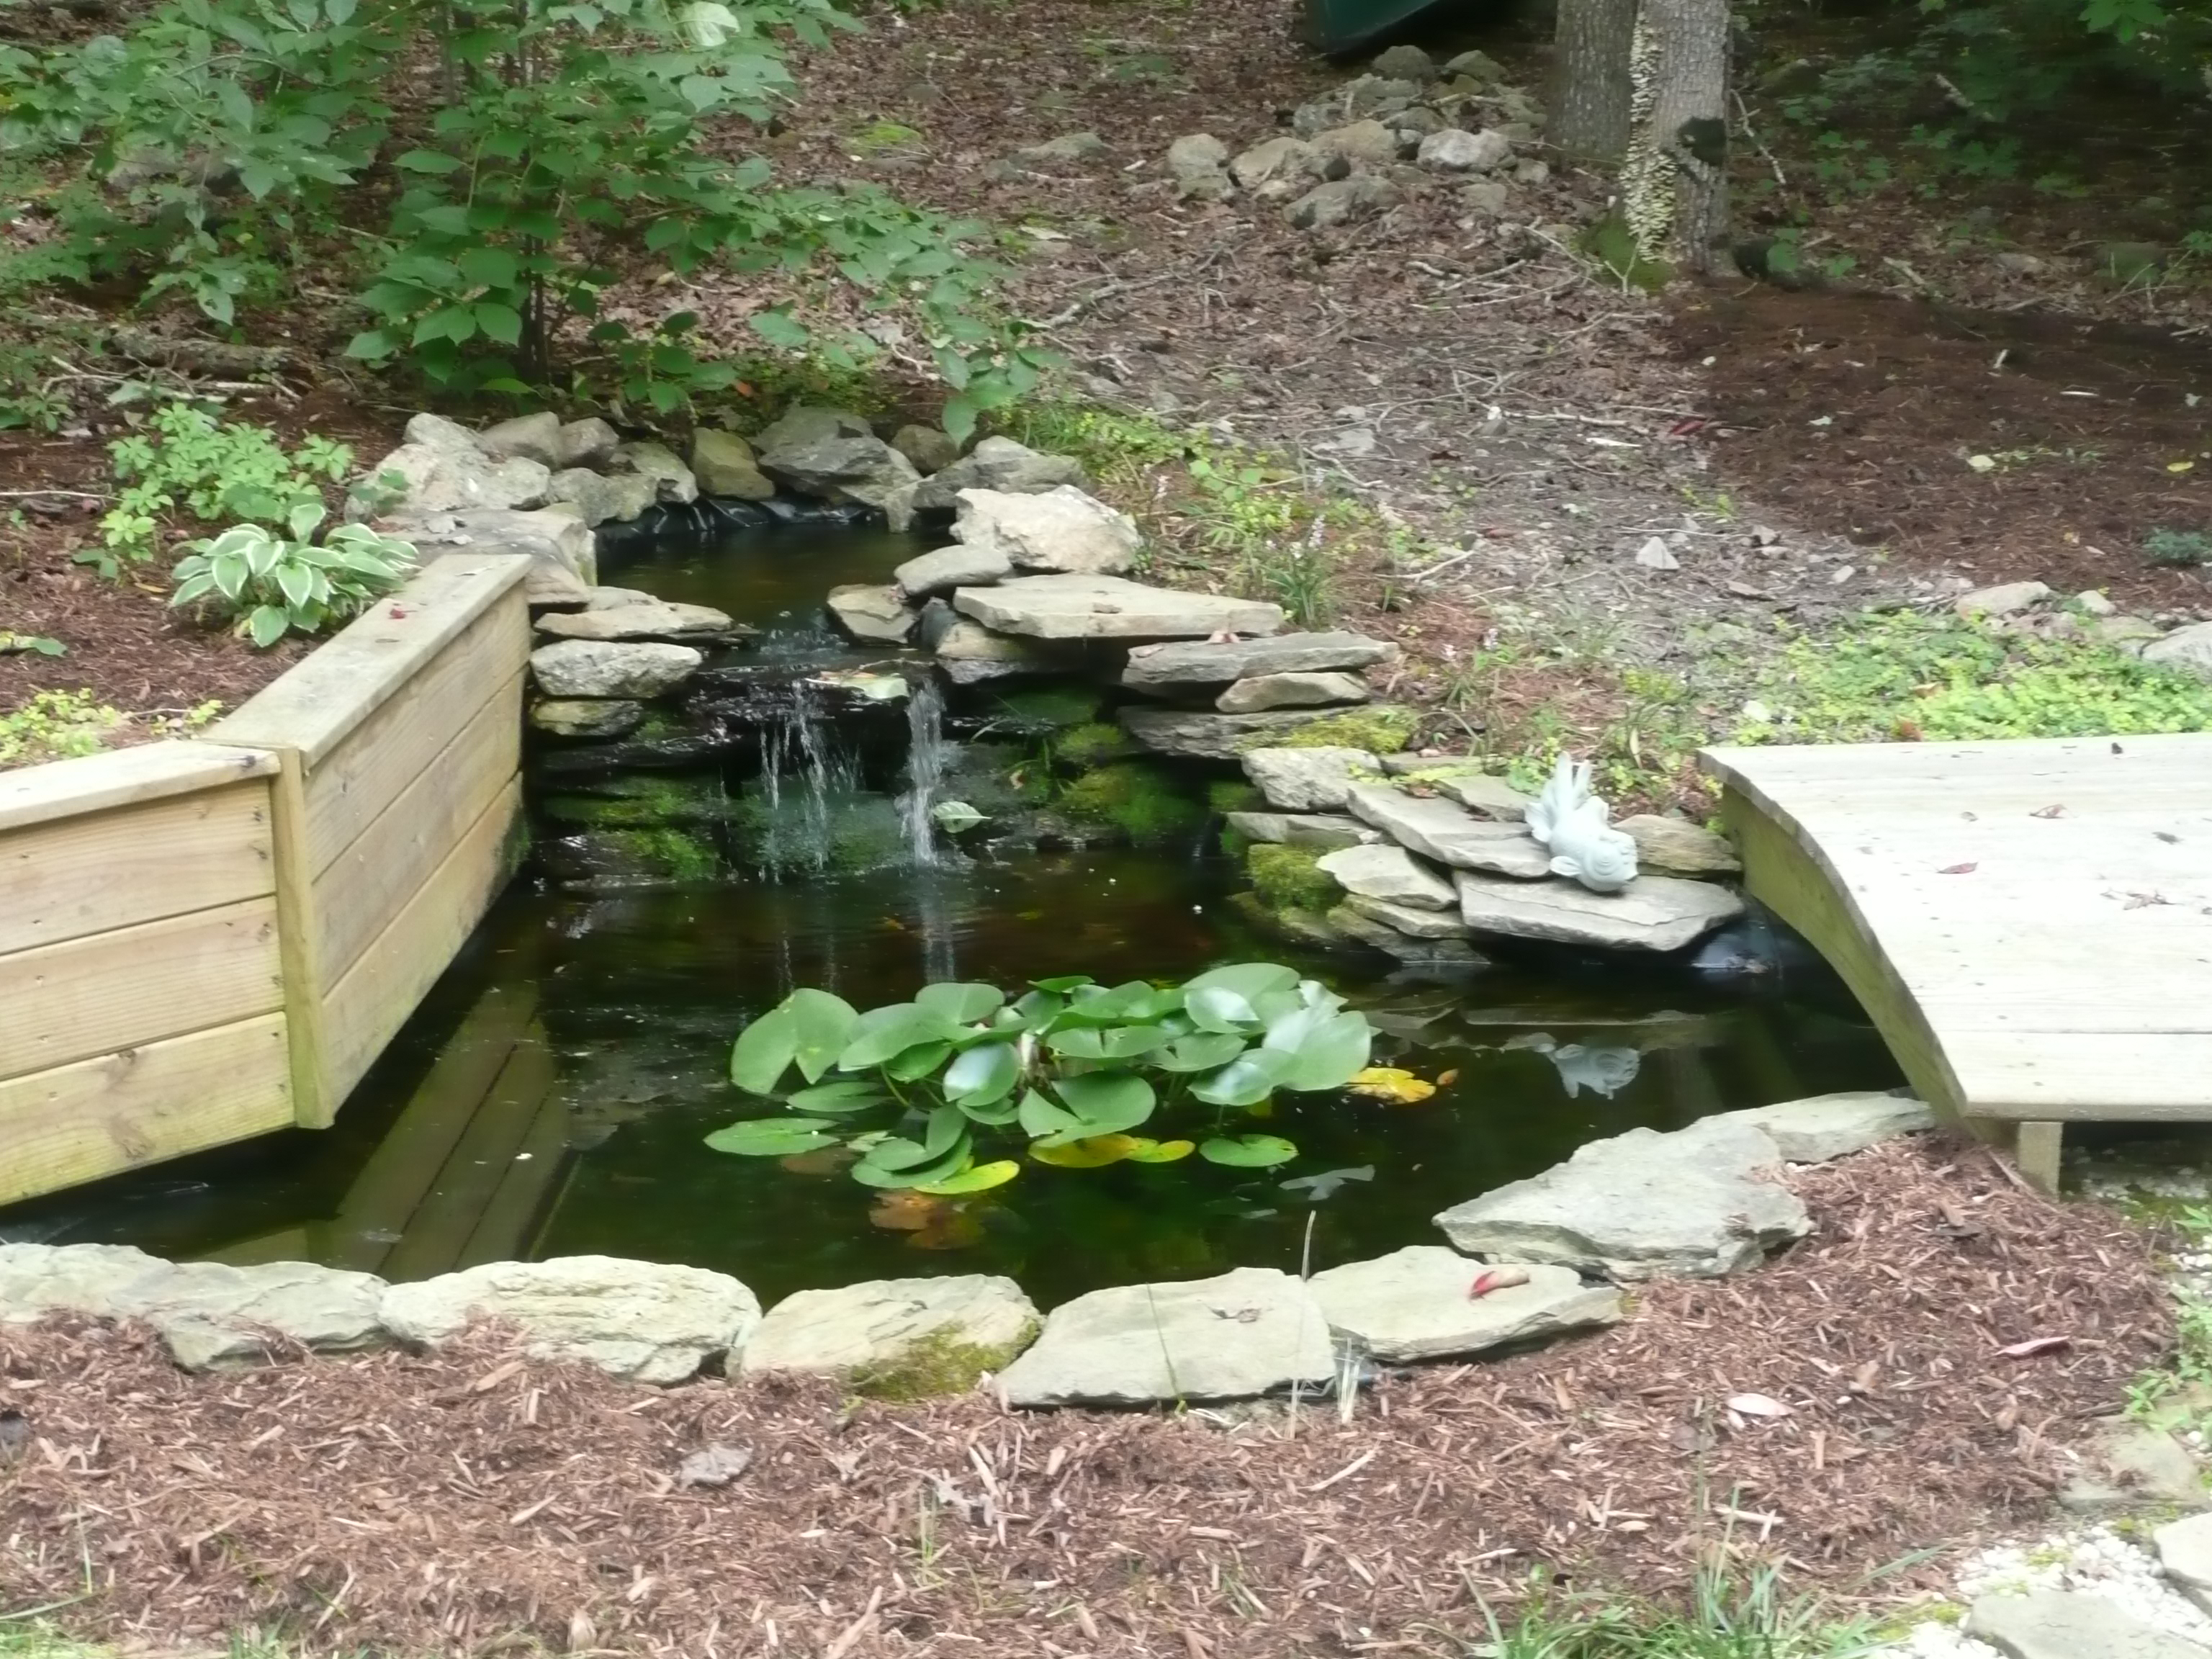 Private water features